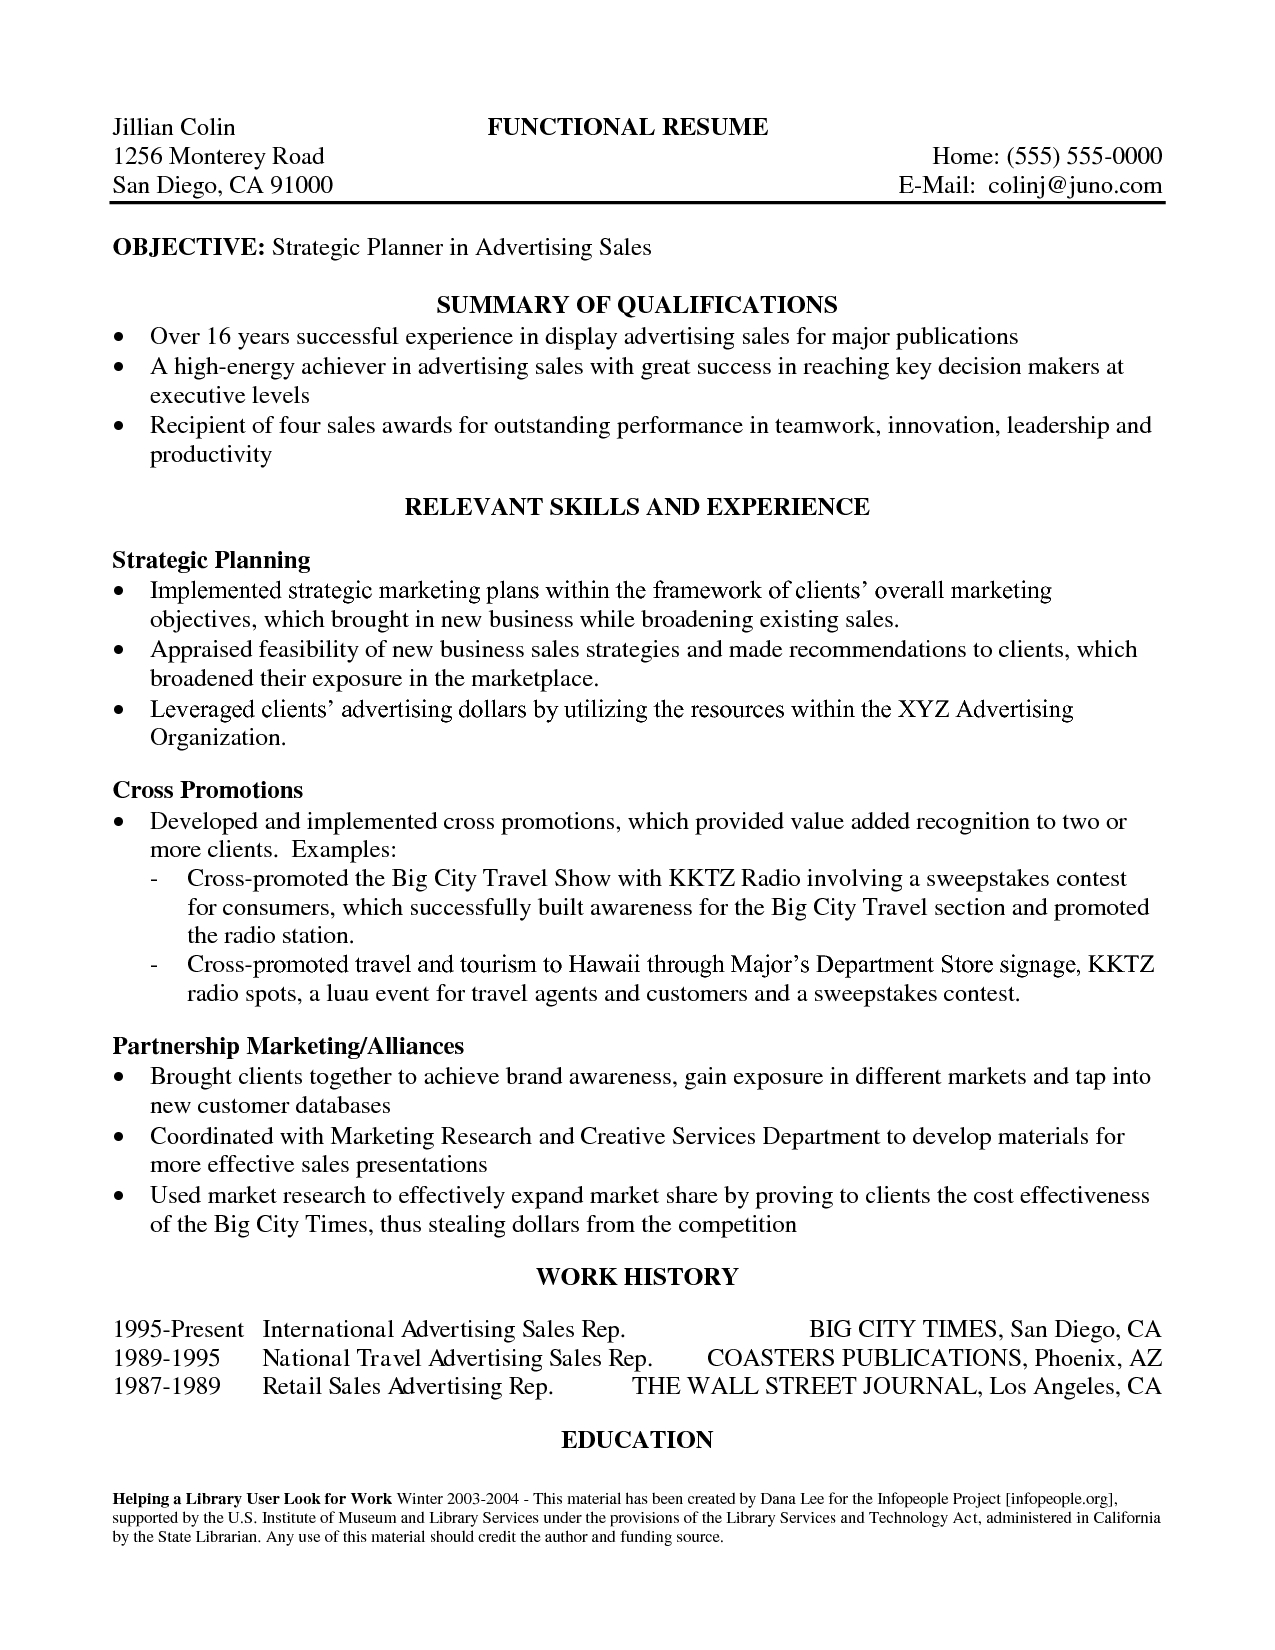 Summary For Marketing Resume What Is A Summary Of Qualifications